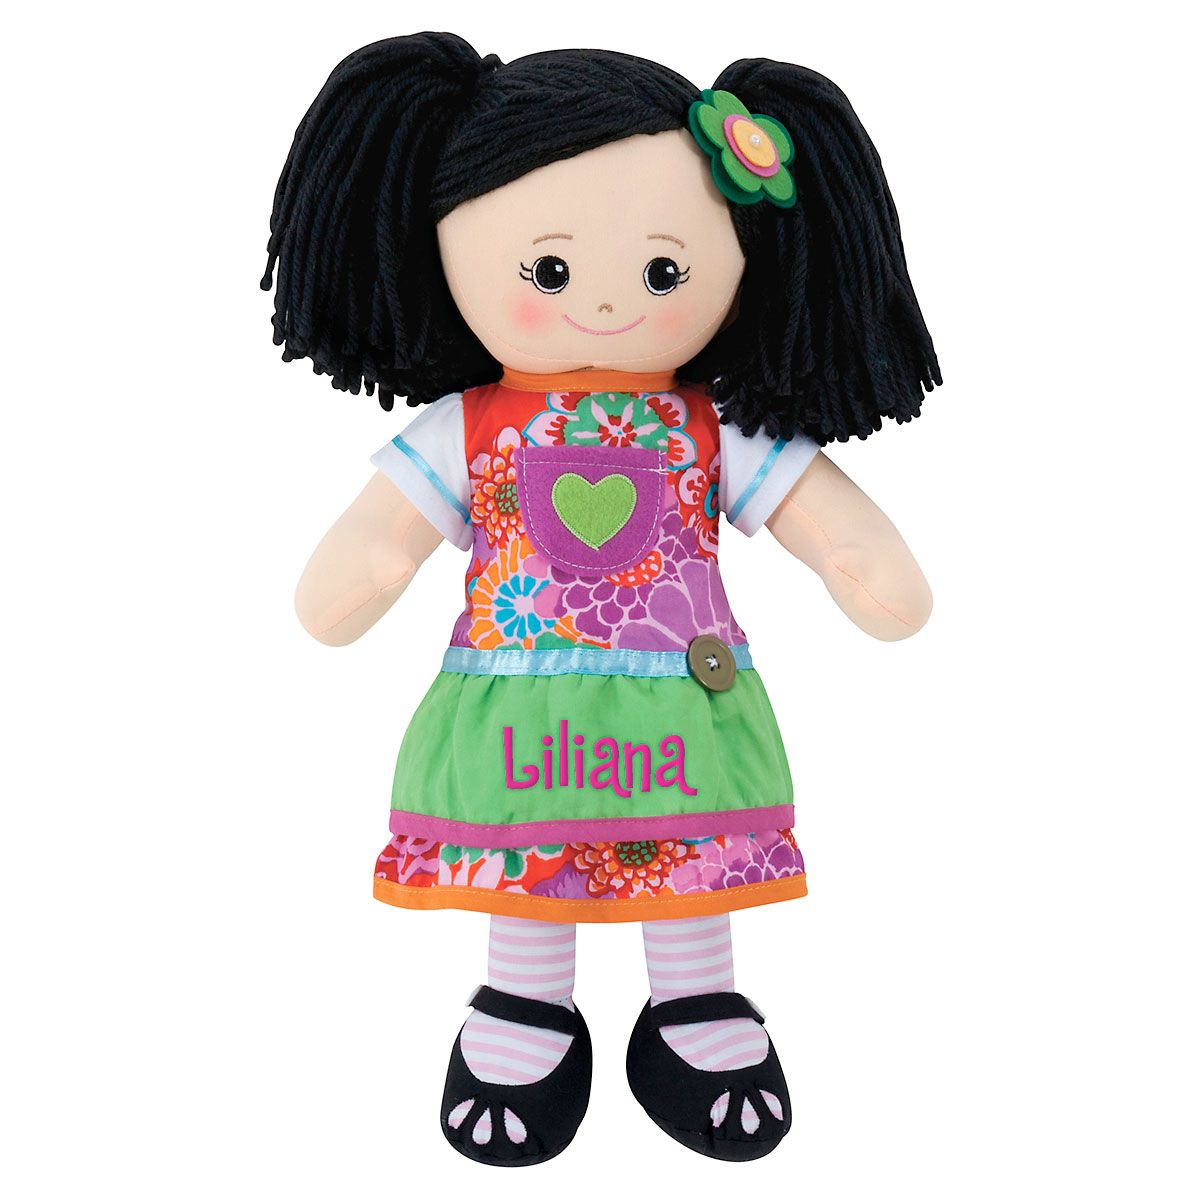 Asian Rag Doll with Apron Dress